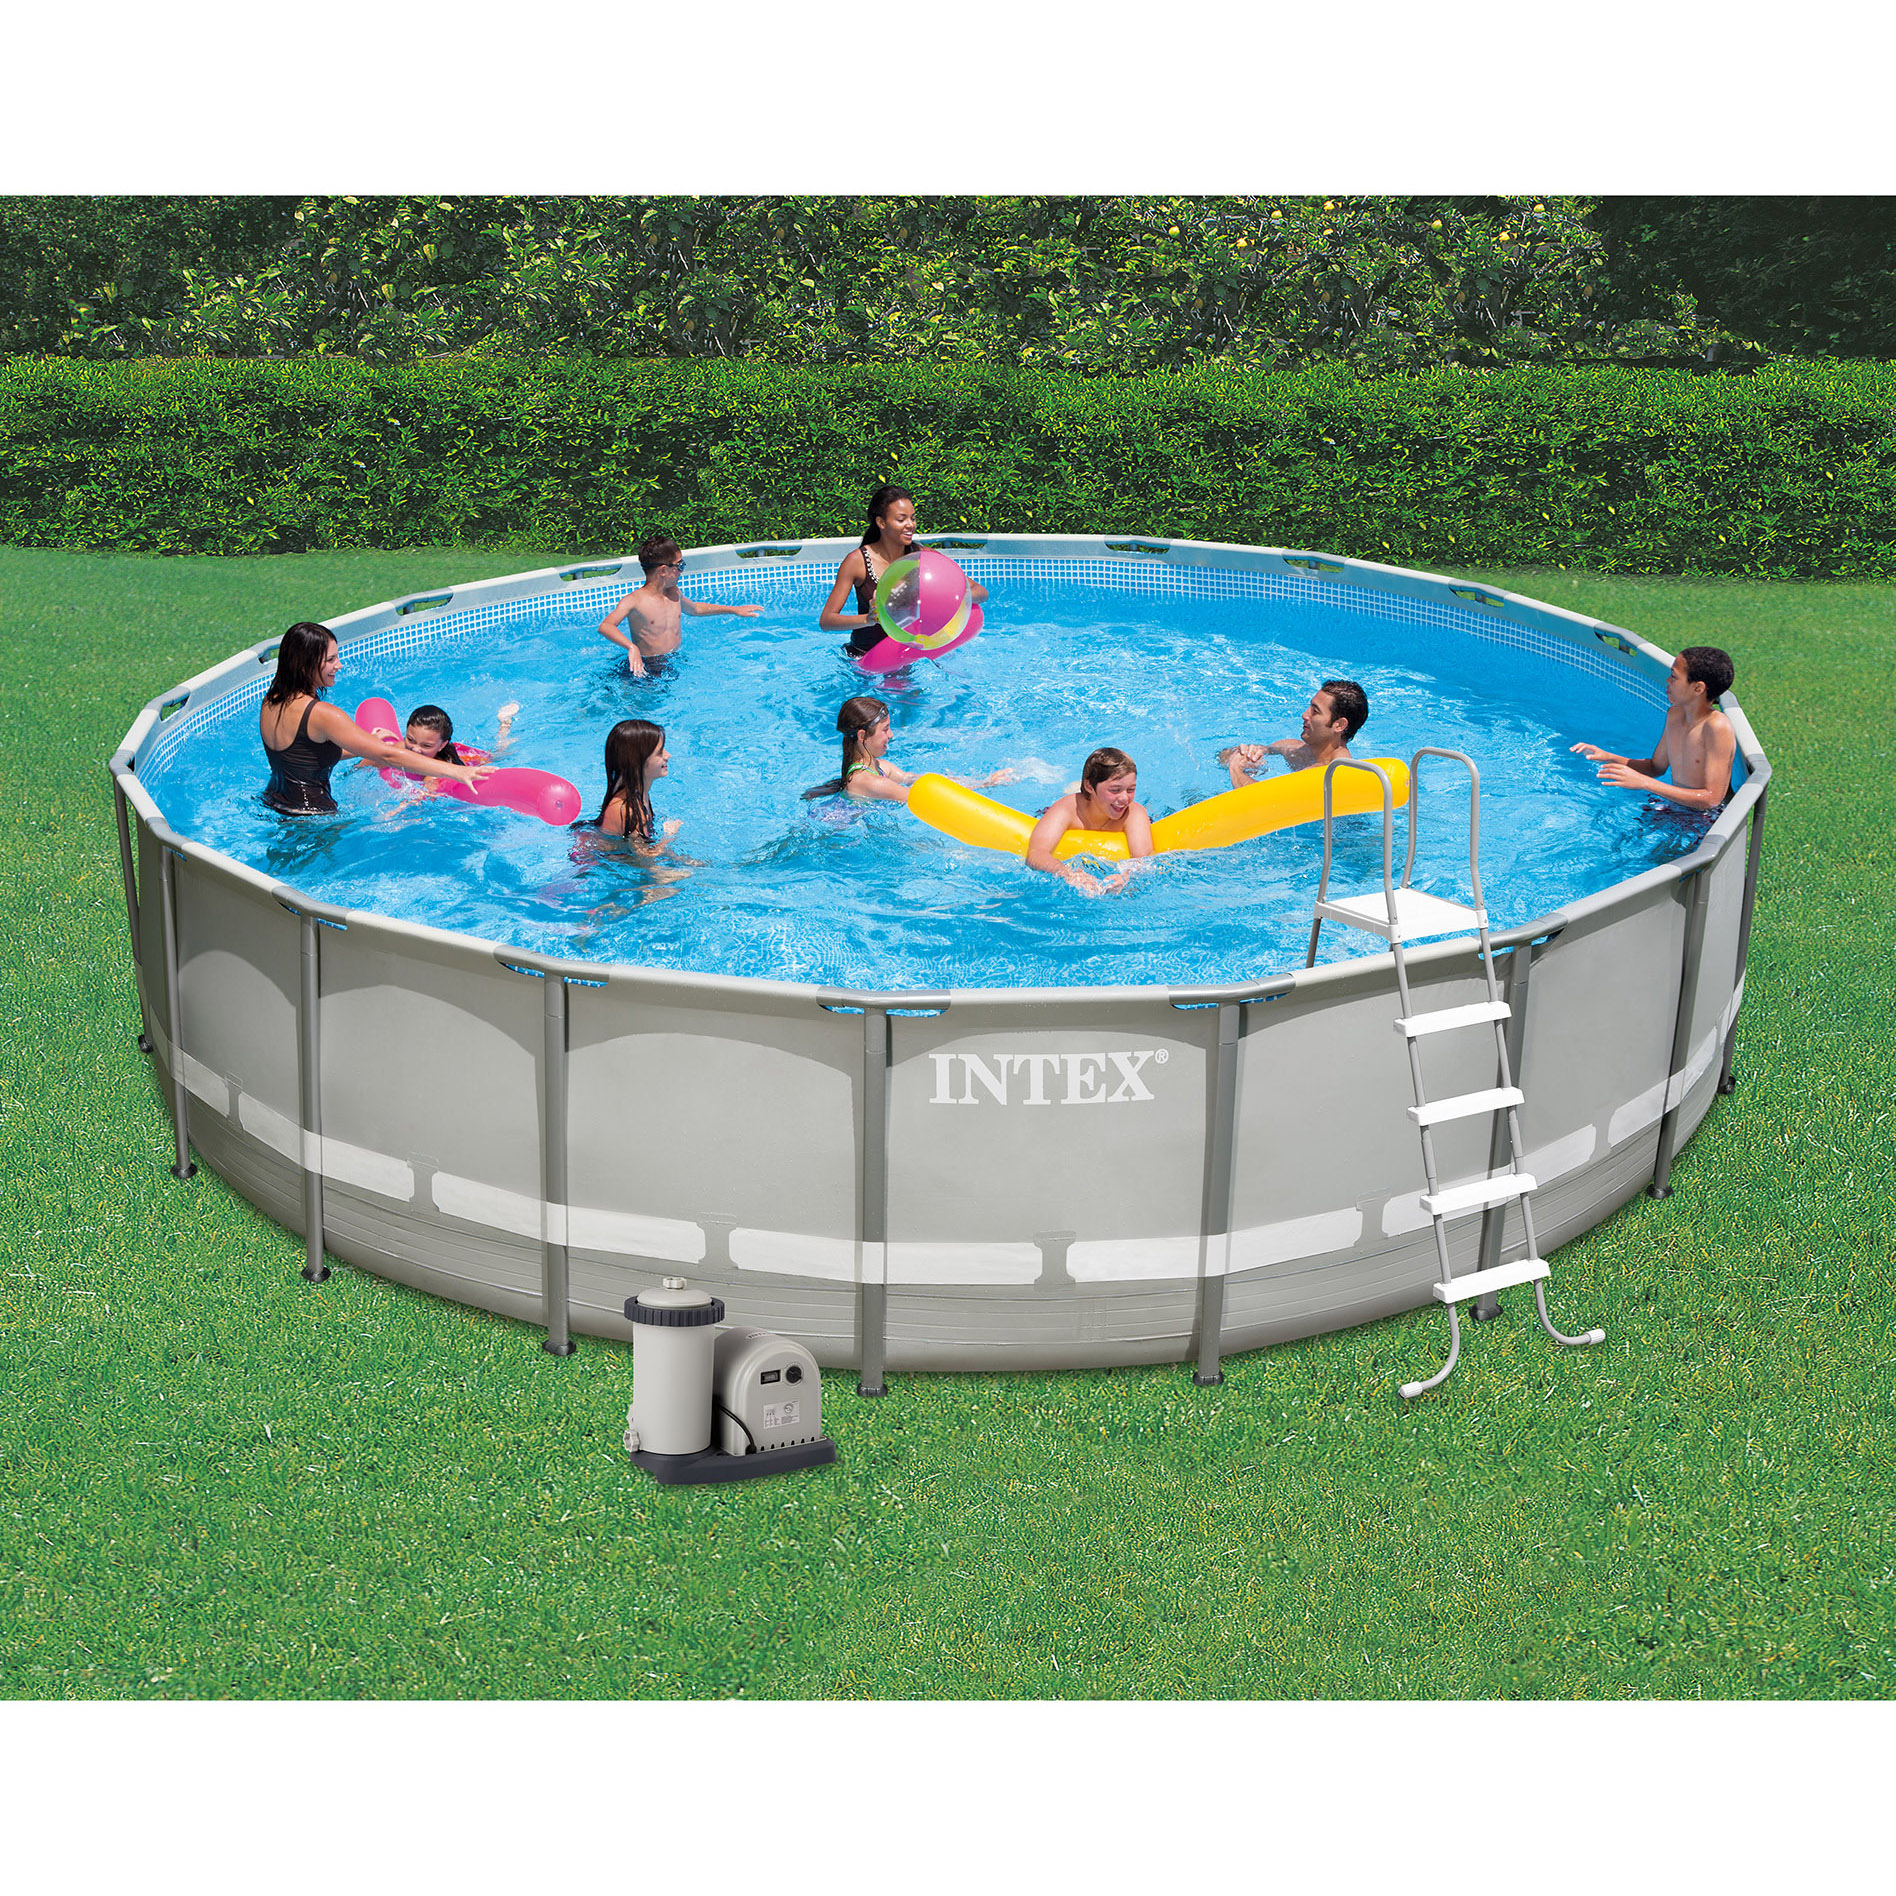 Intex 24 39 x 52 ultra frame above ground swimming pool set for Ground swimming pools